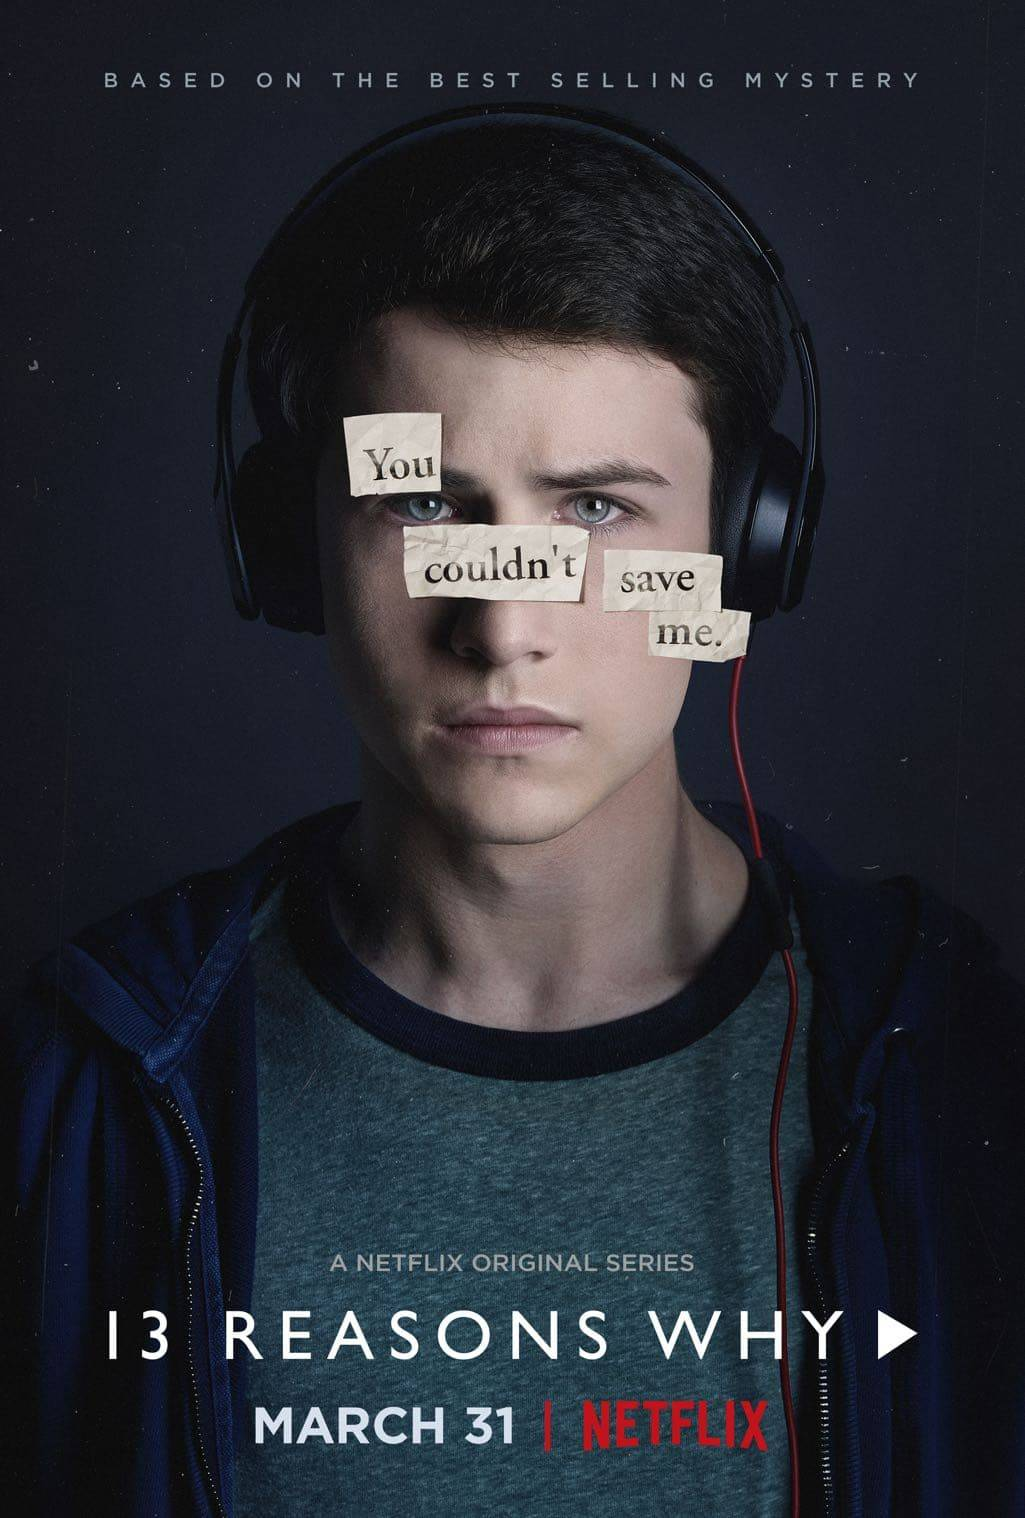 13-Reasons-Why-Character-Poster-Dylan-Minnette-as-Clay-Jensen